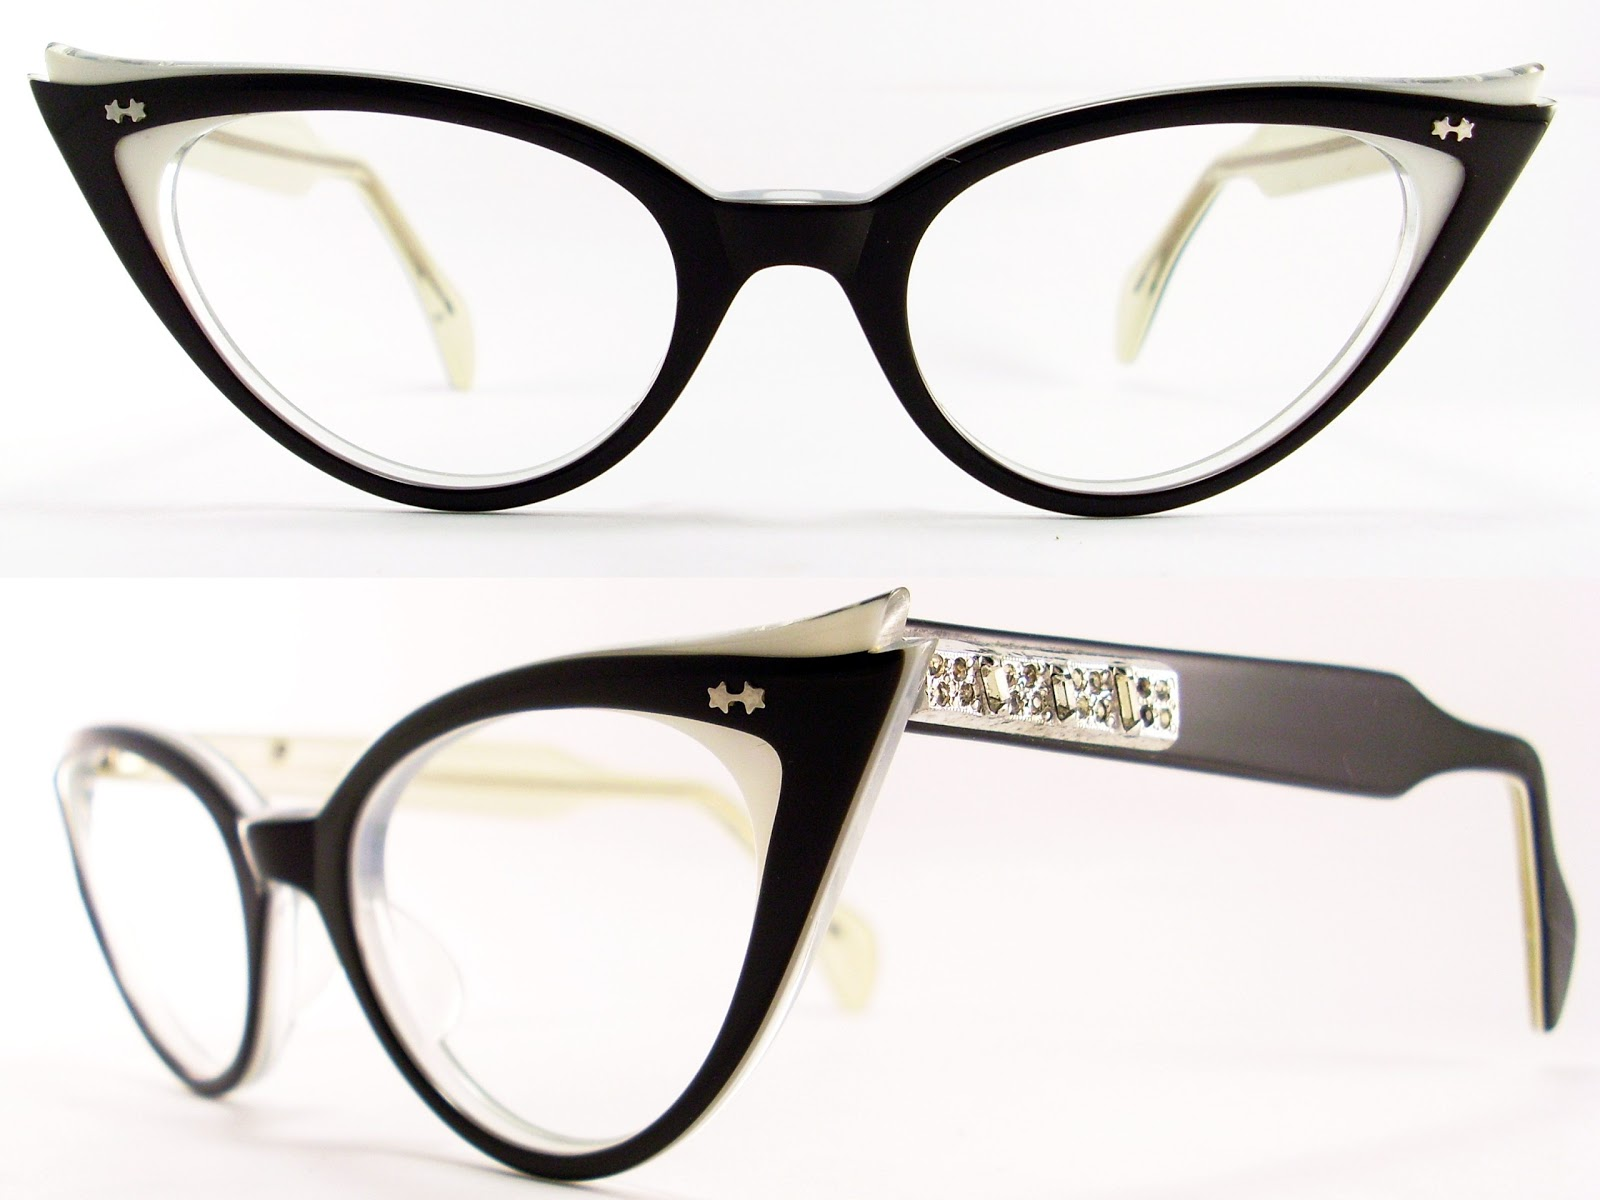 Vintage Eyeglass Frames Cat Eye : Cats, Cat Eyes, Vintage Eyeglasses, Cat Eye Glasses ...